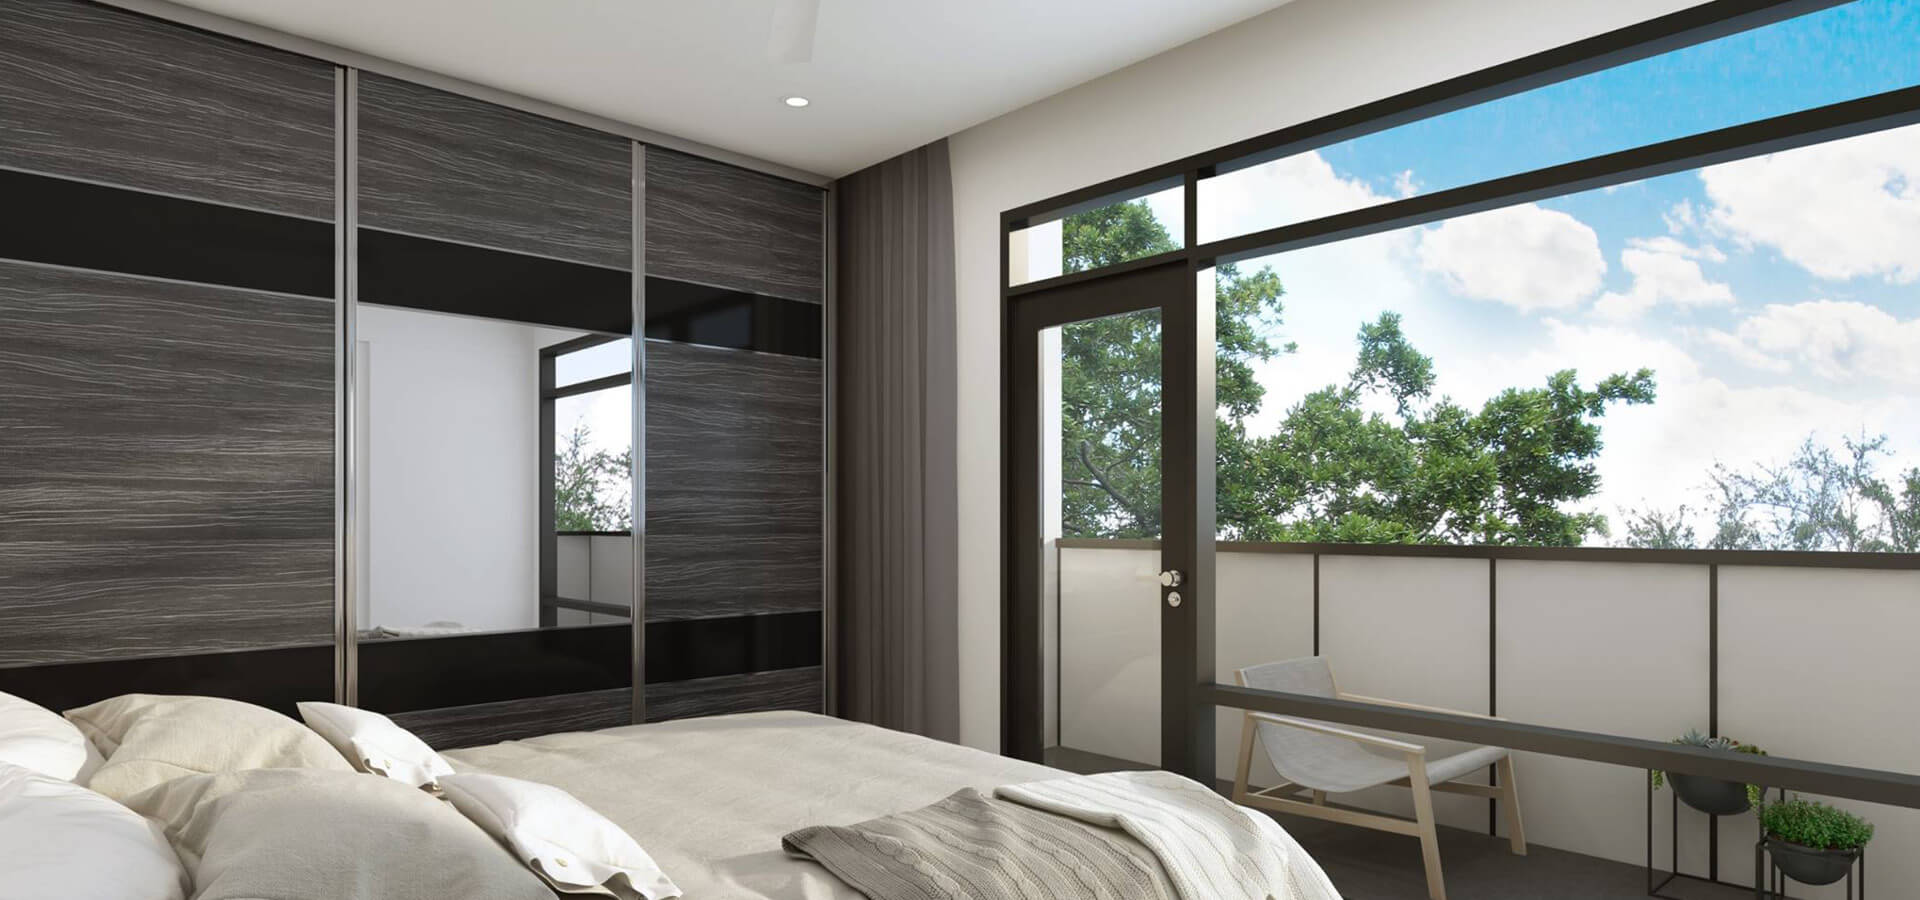 Fitted Bedroom Furnture_Perfect For The Bedroom